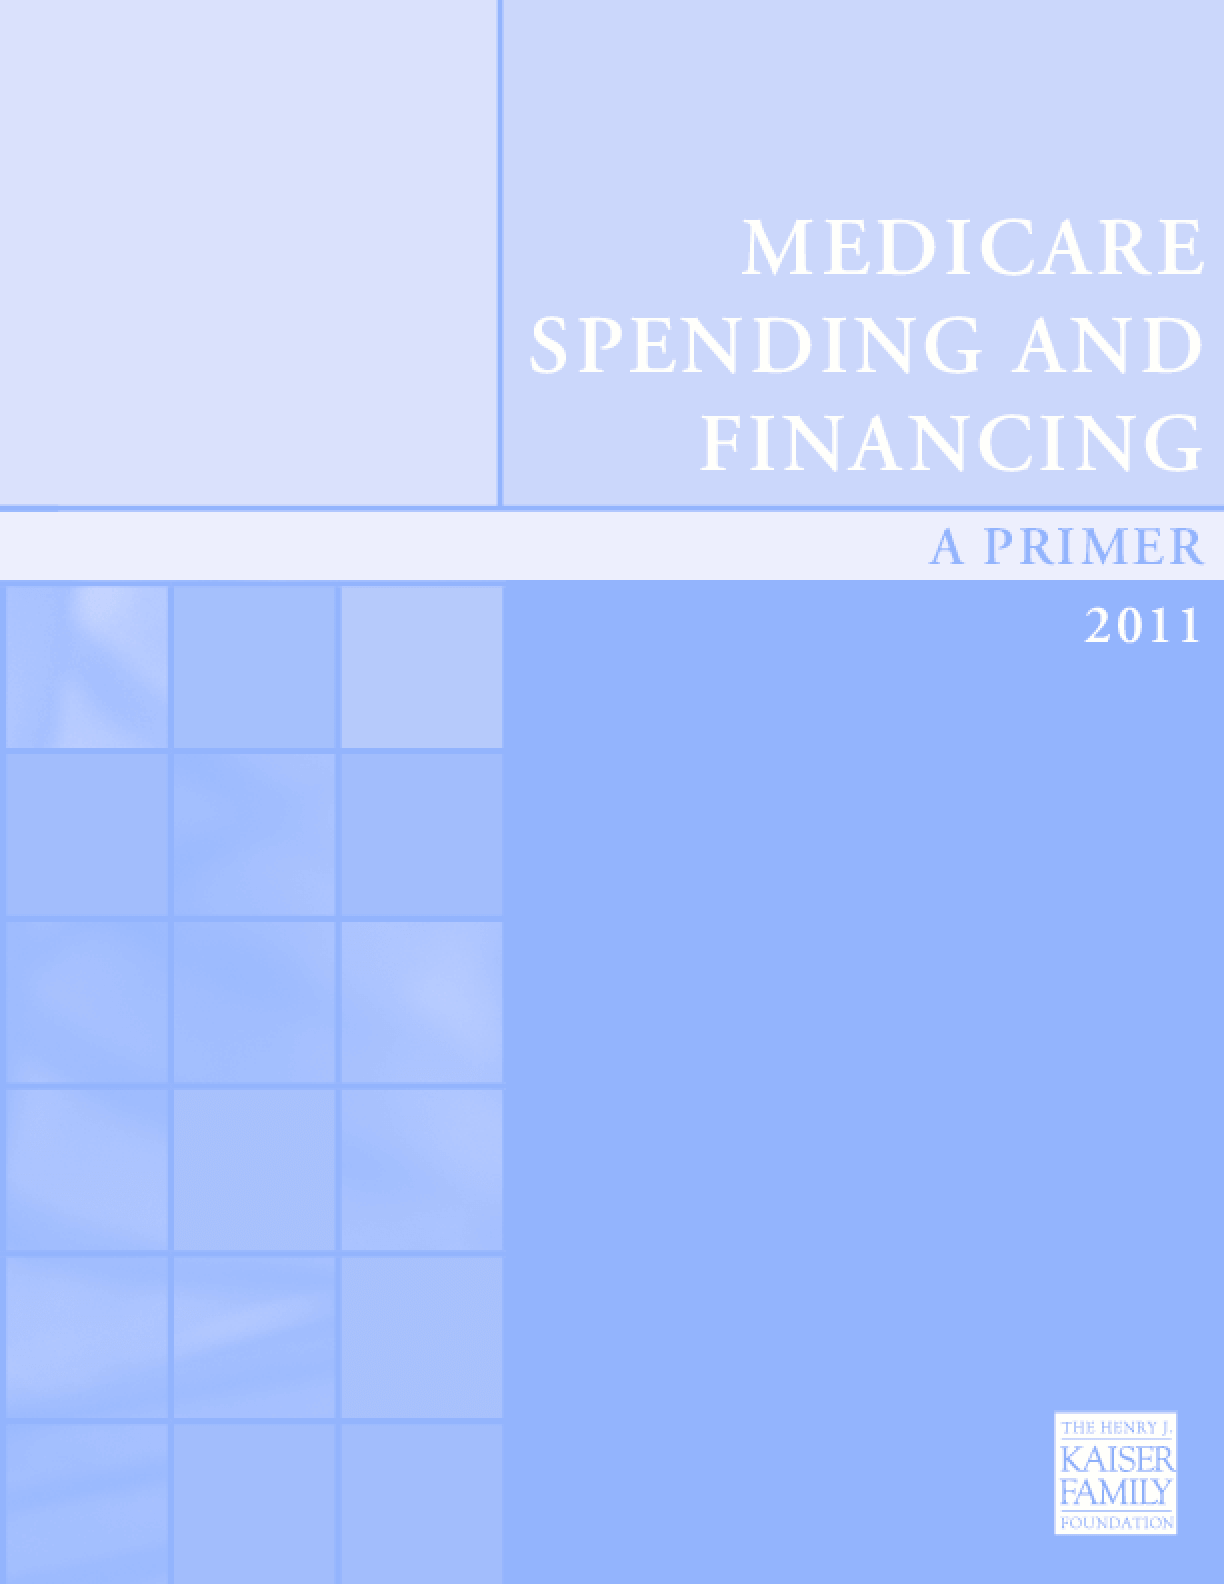 A Primer on Medicare Spending and Financing